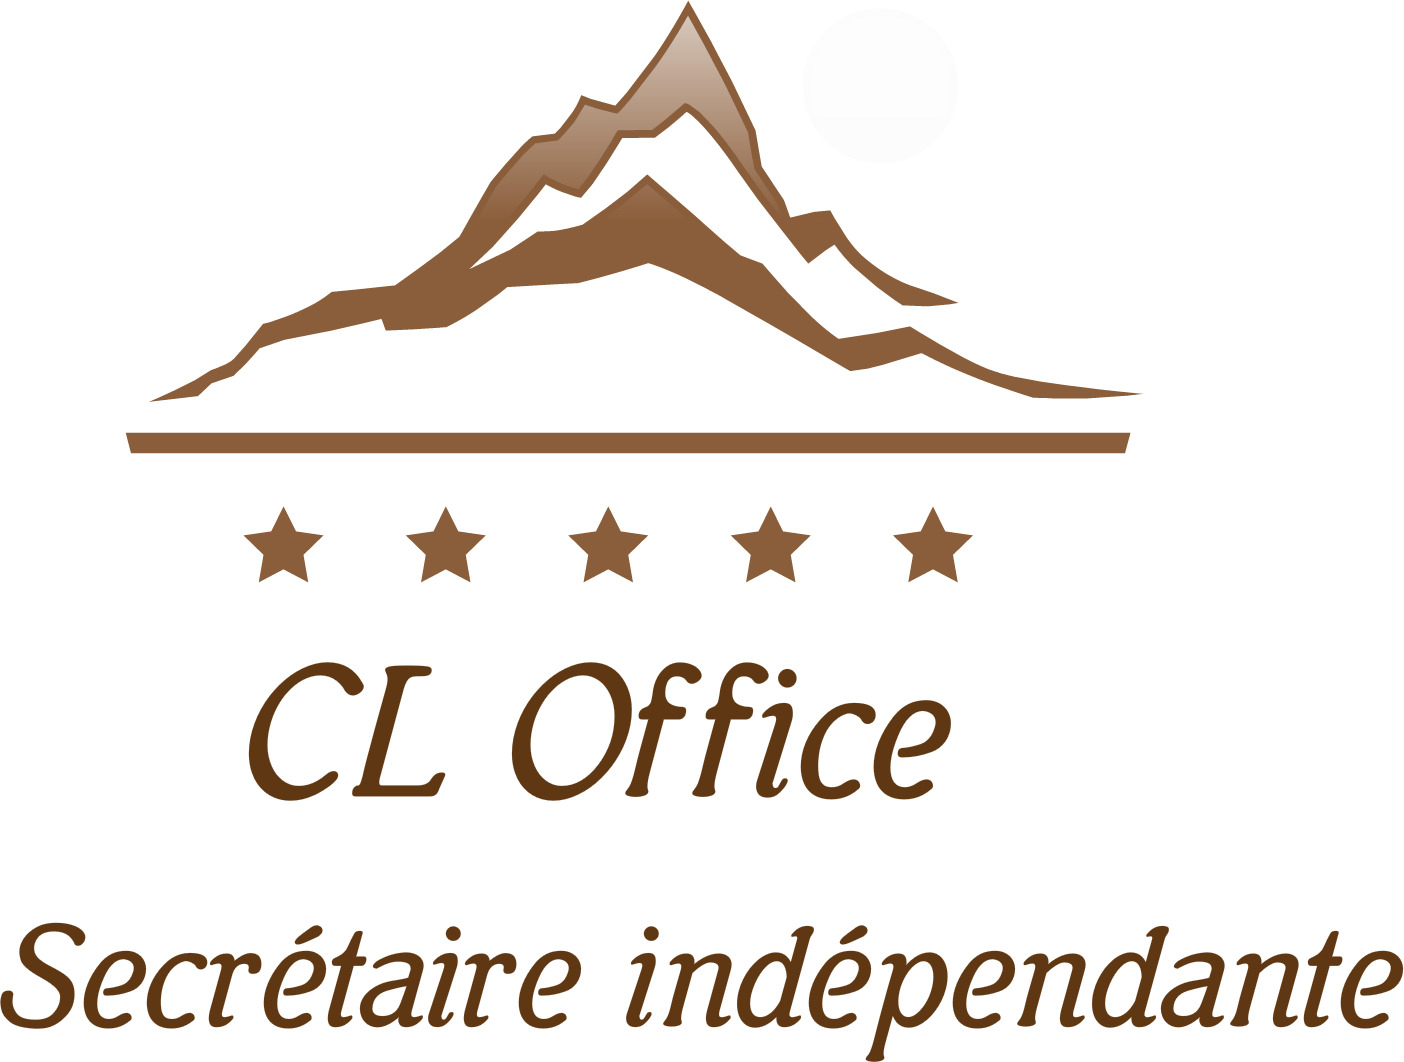 CL Office